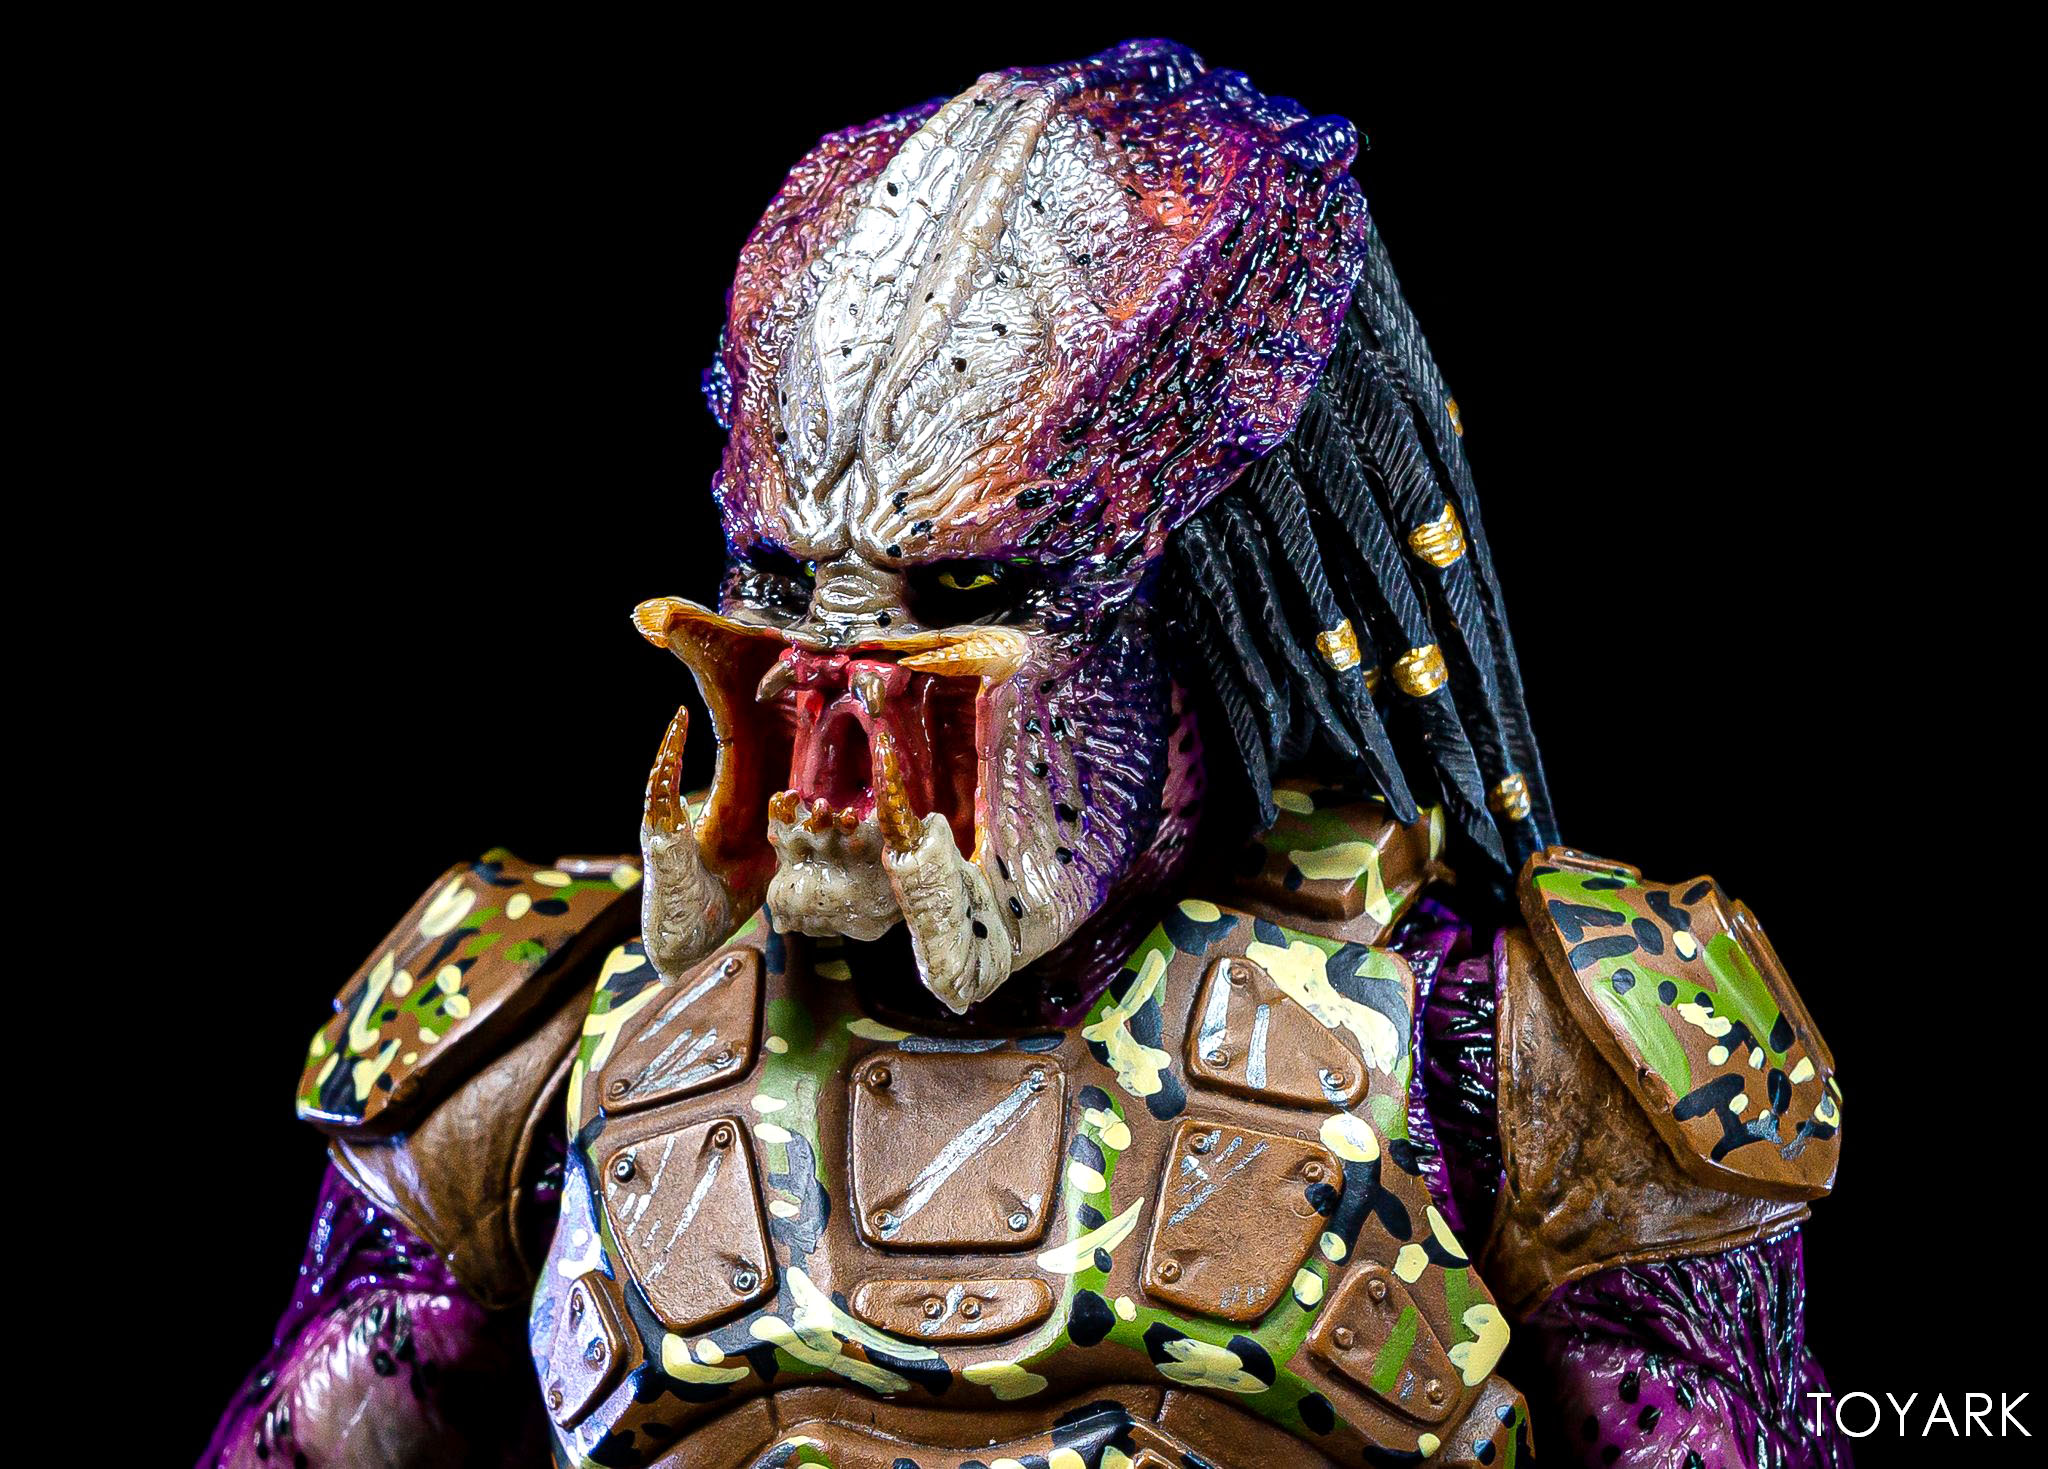 https://news.toyark.com/wp-content/uploads/sites/4/2019/05/Emissary-Predator-1-NECA-Figure-007.jpg